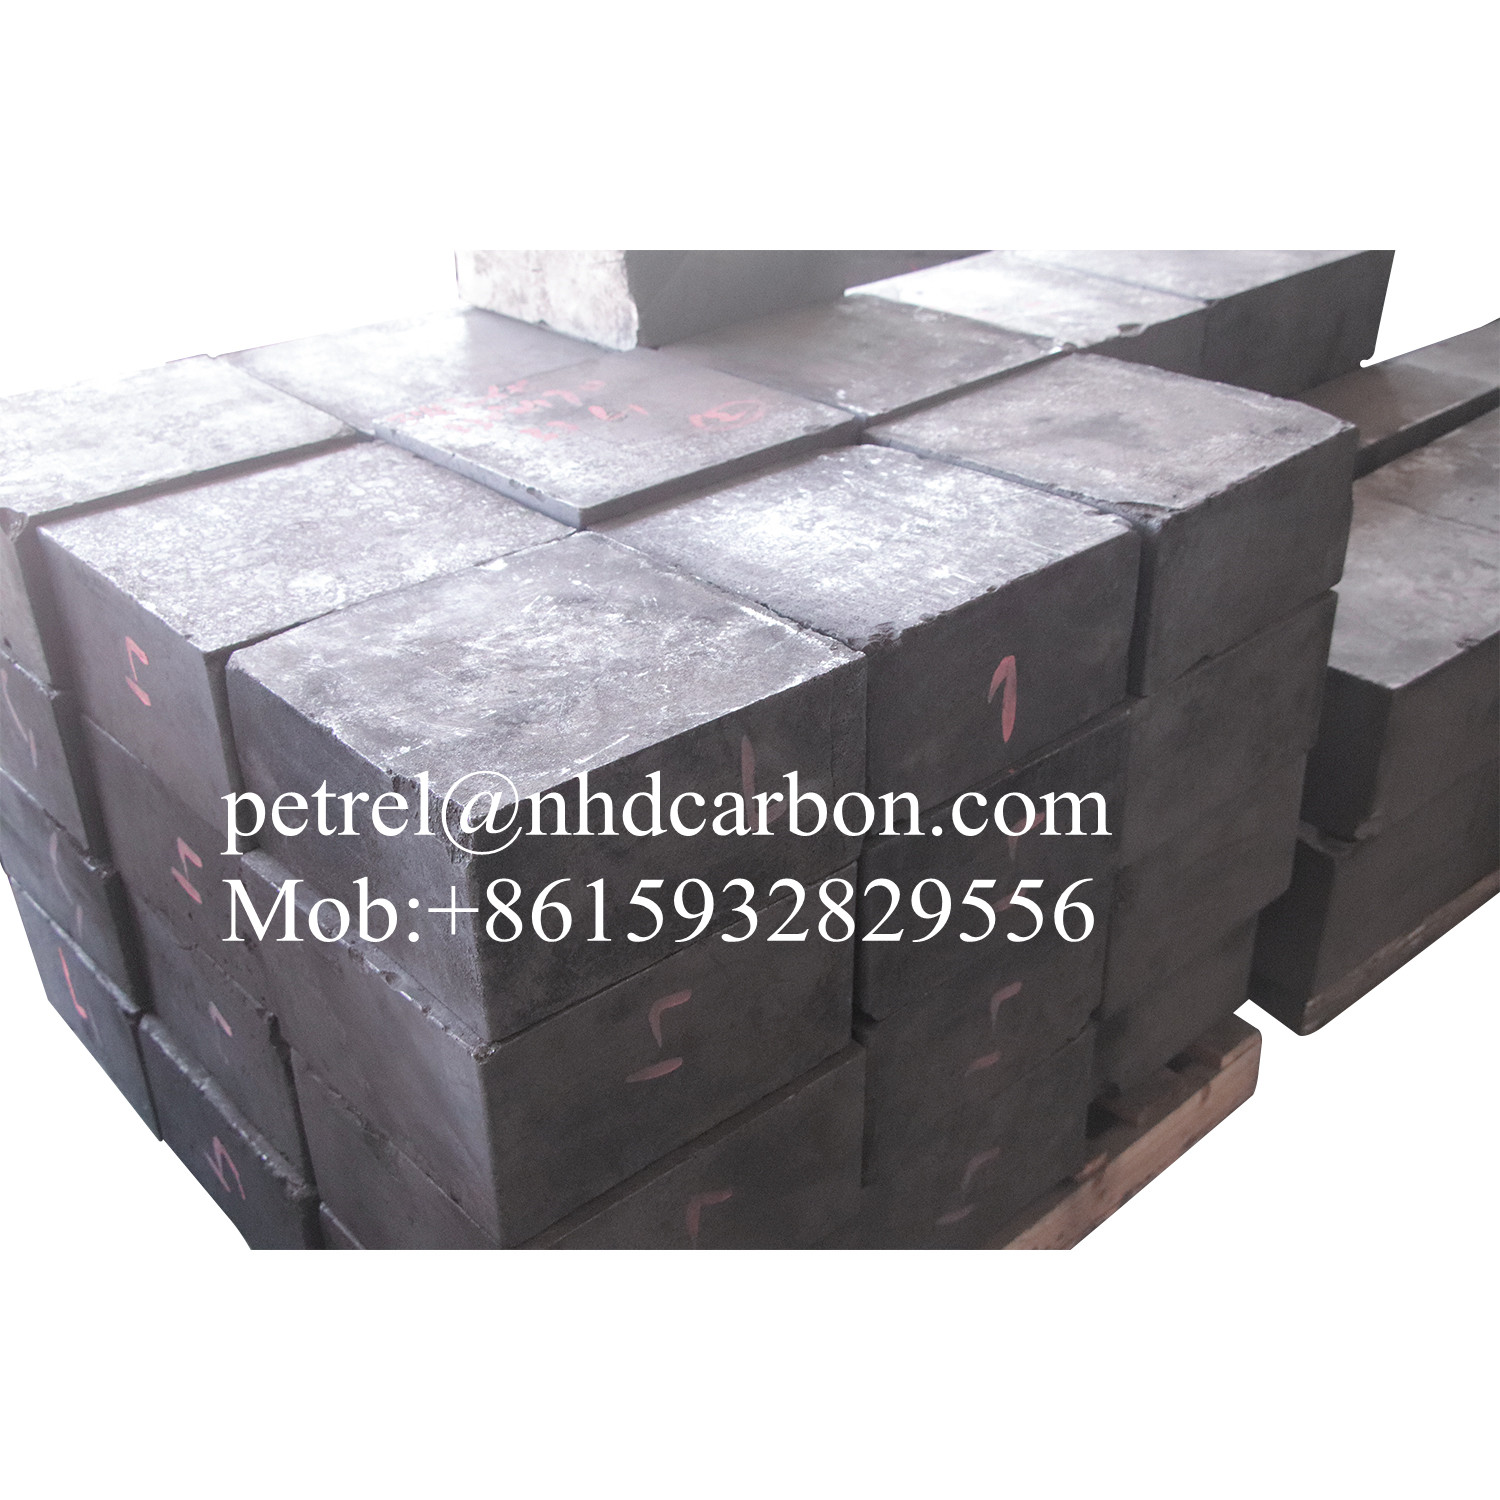 Graphite sheet graphite block for energy mineral refractory industry